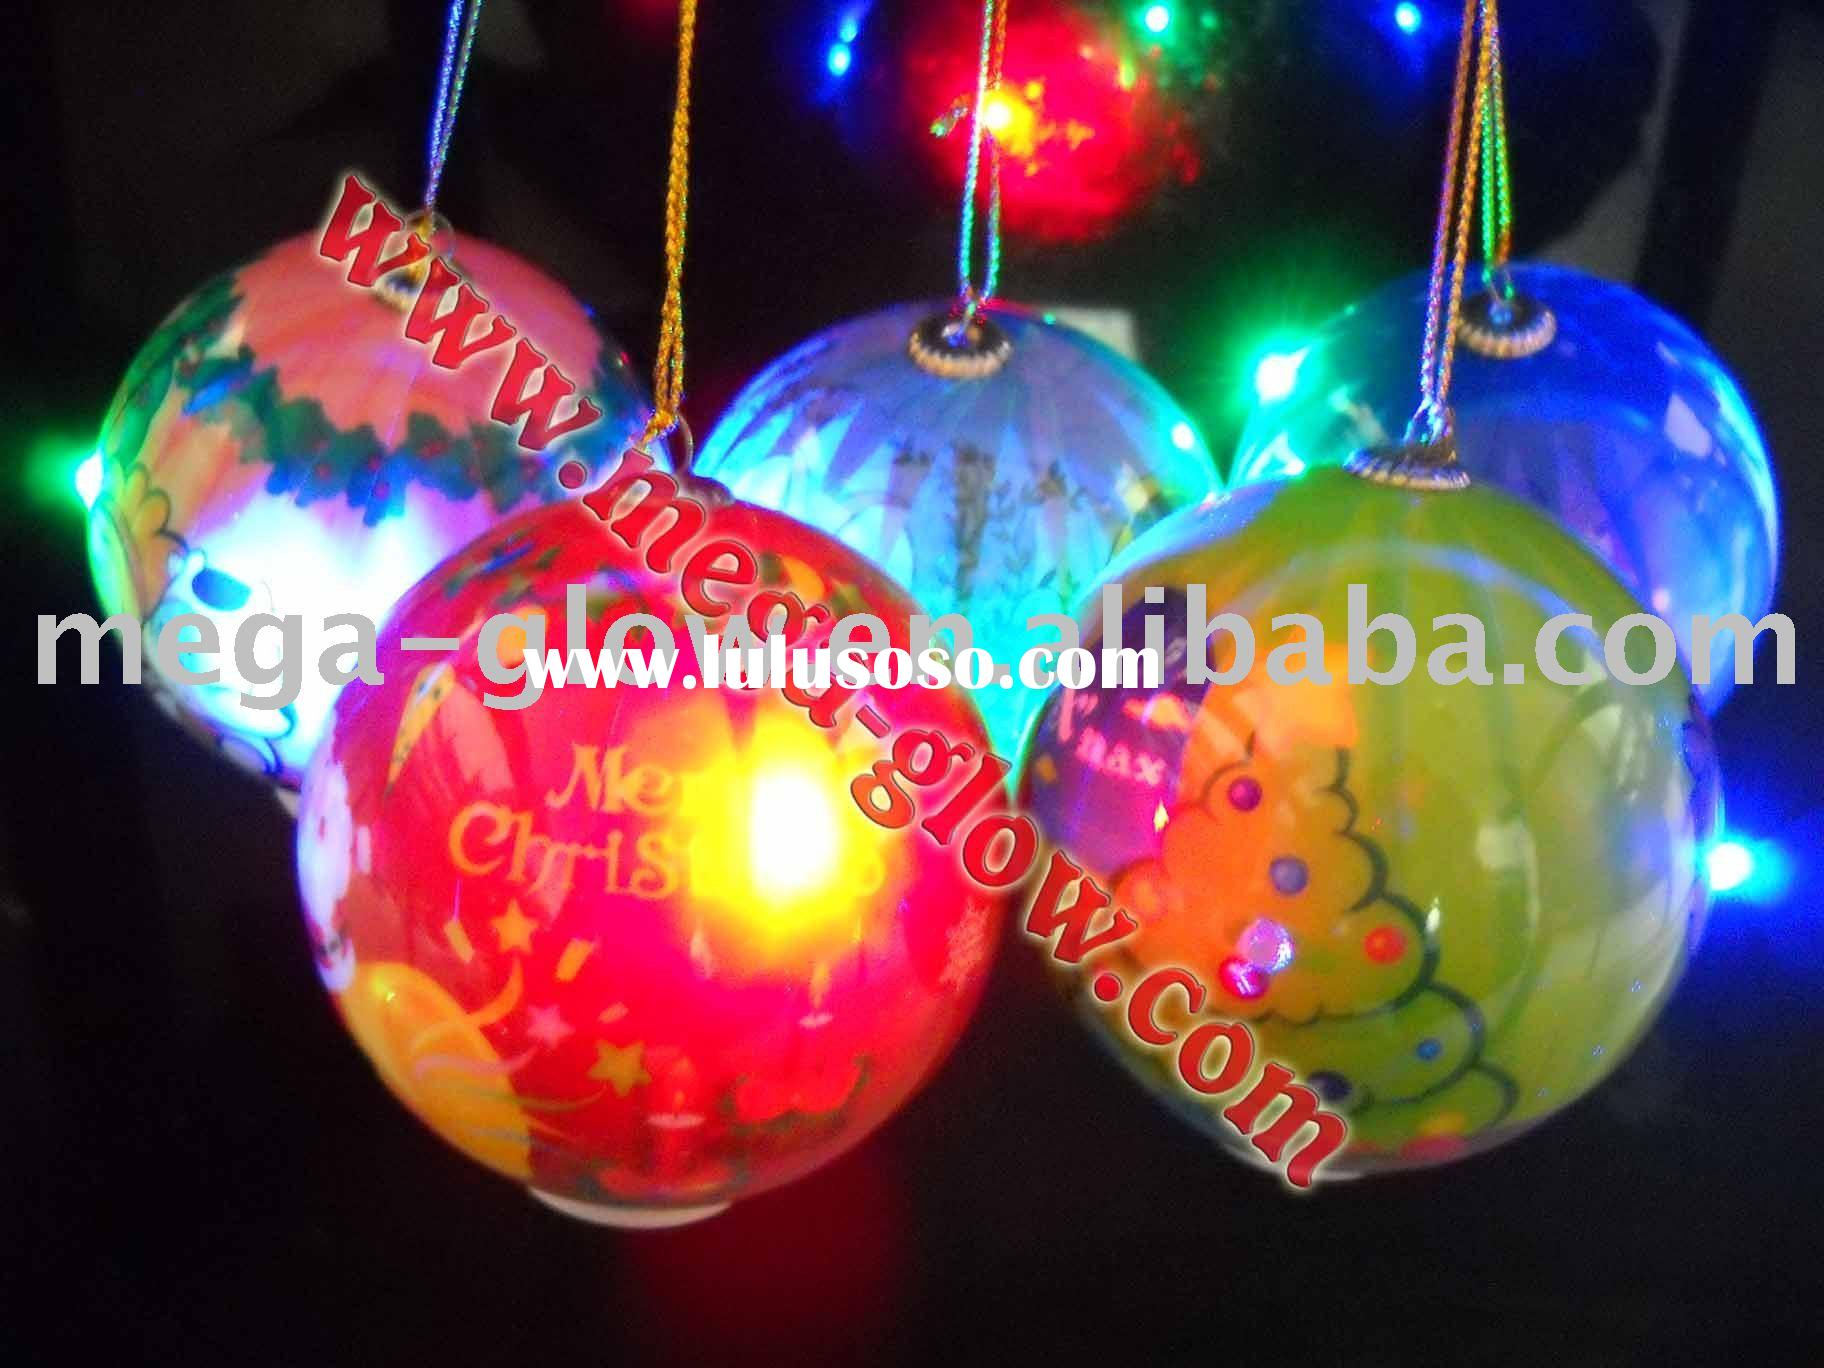 LED Christmas light ball,Christmas decoration ball,flashing ball